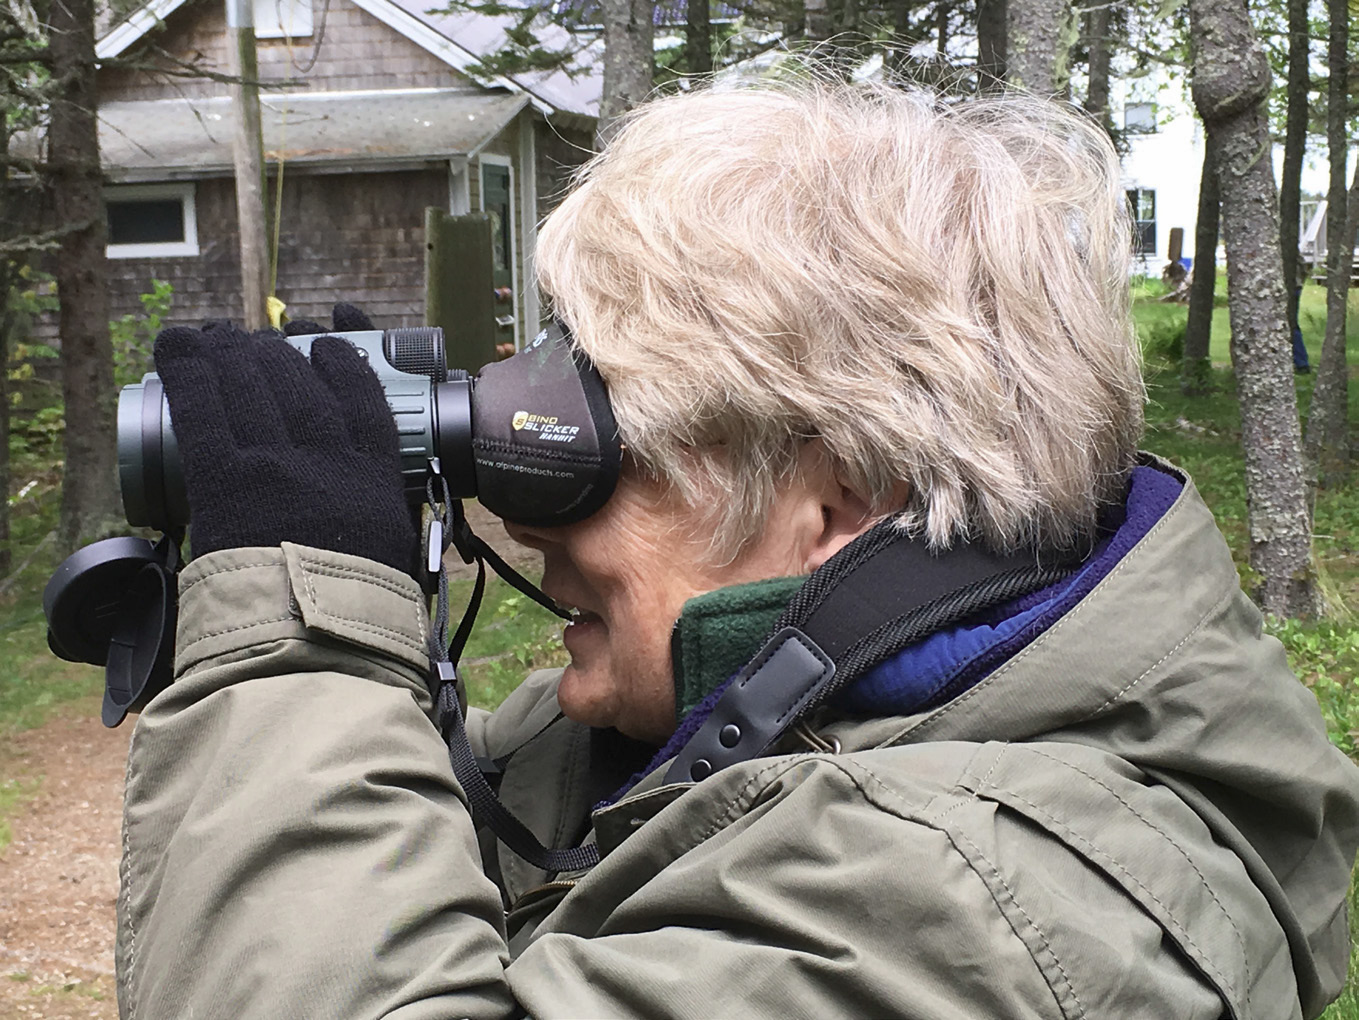 This lightweight mask slips over a binocular's eye-pieces and blocks out peripheral light. While birding in Portugal, the author used this novel device and found that it sharpened her focus.  Photo by Dawn Hewitt.